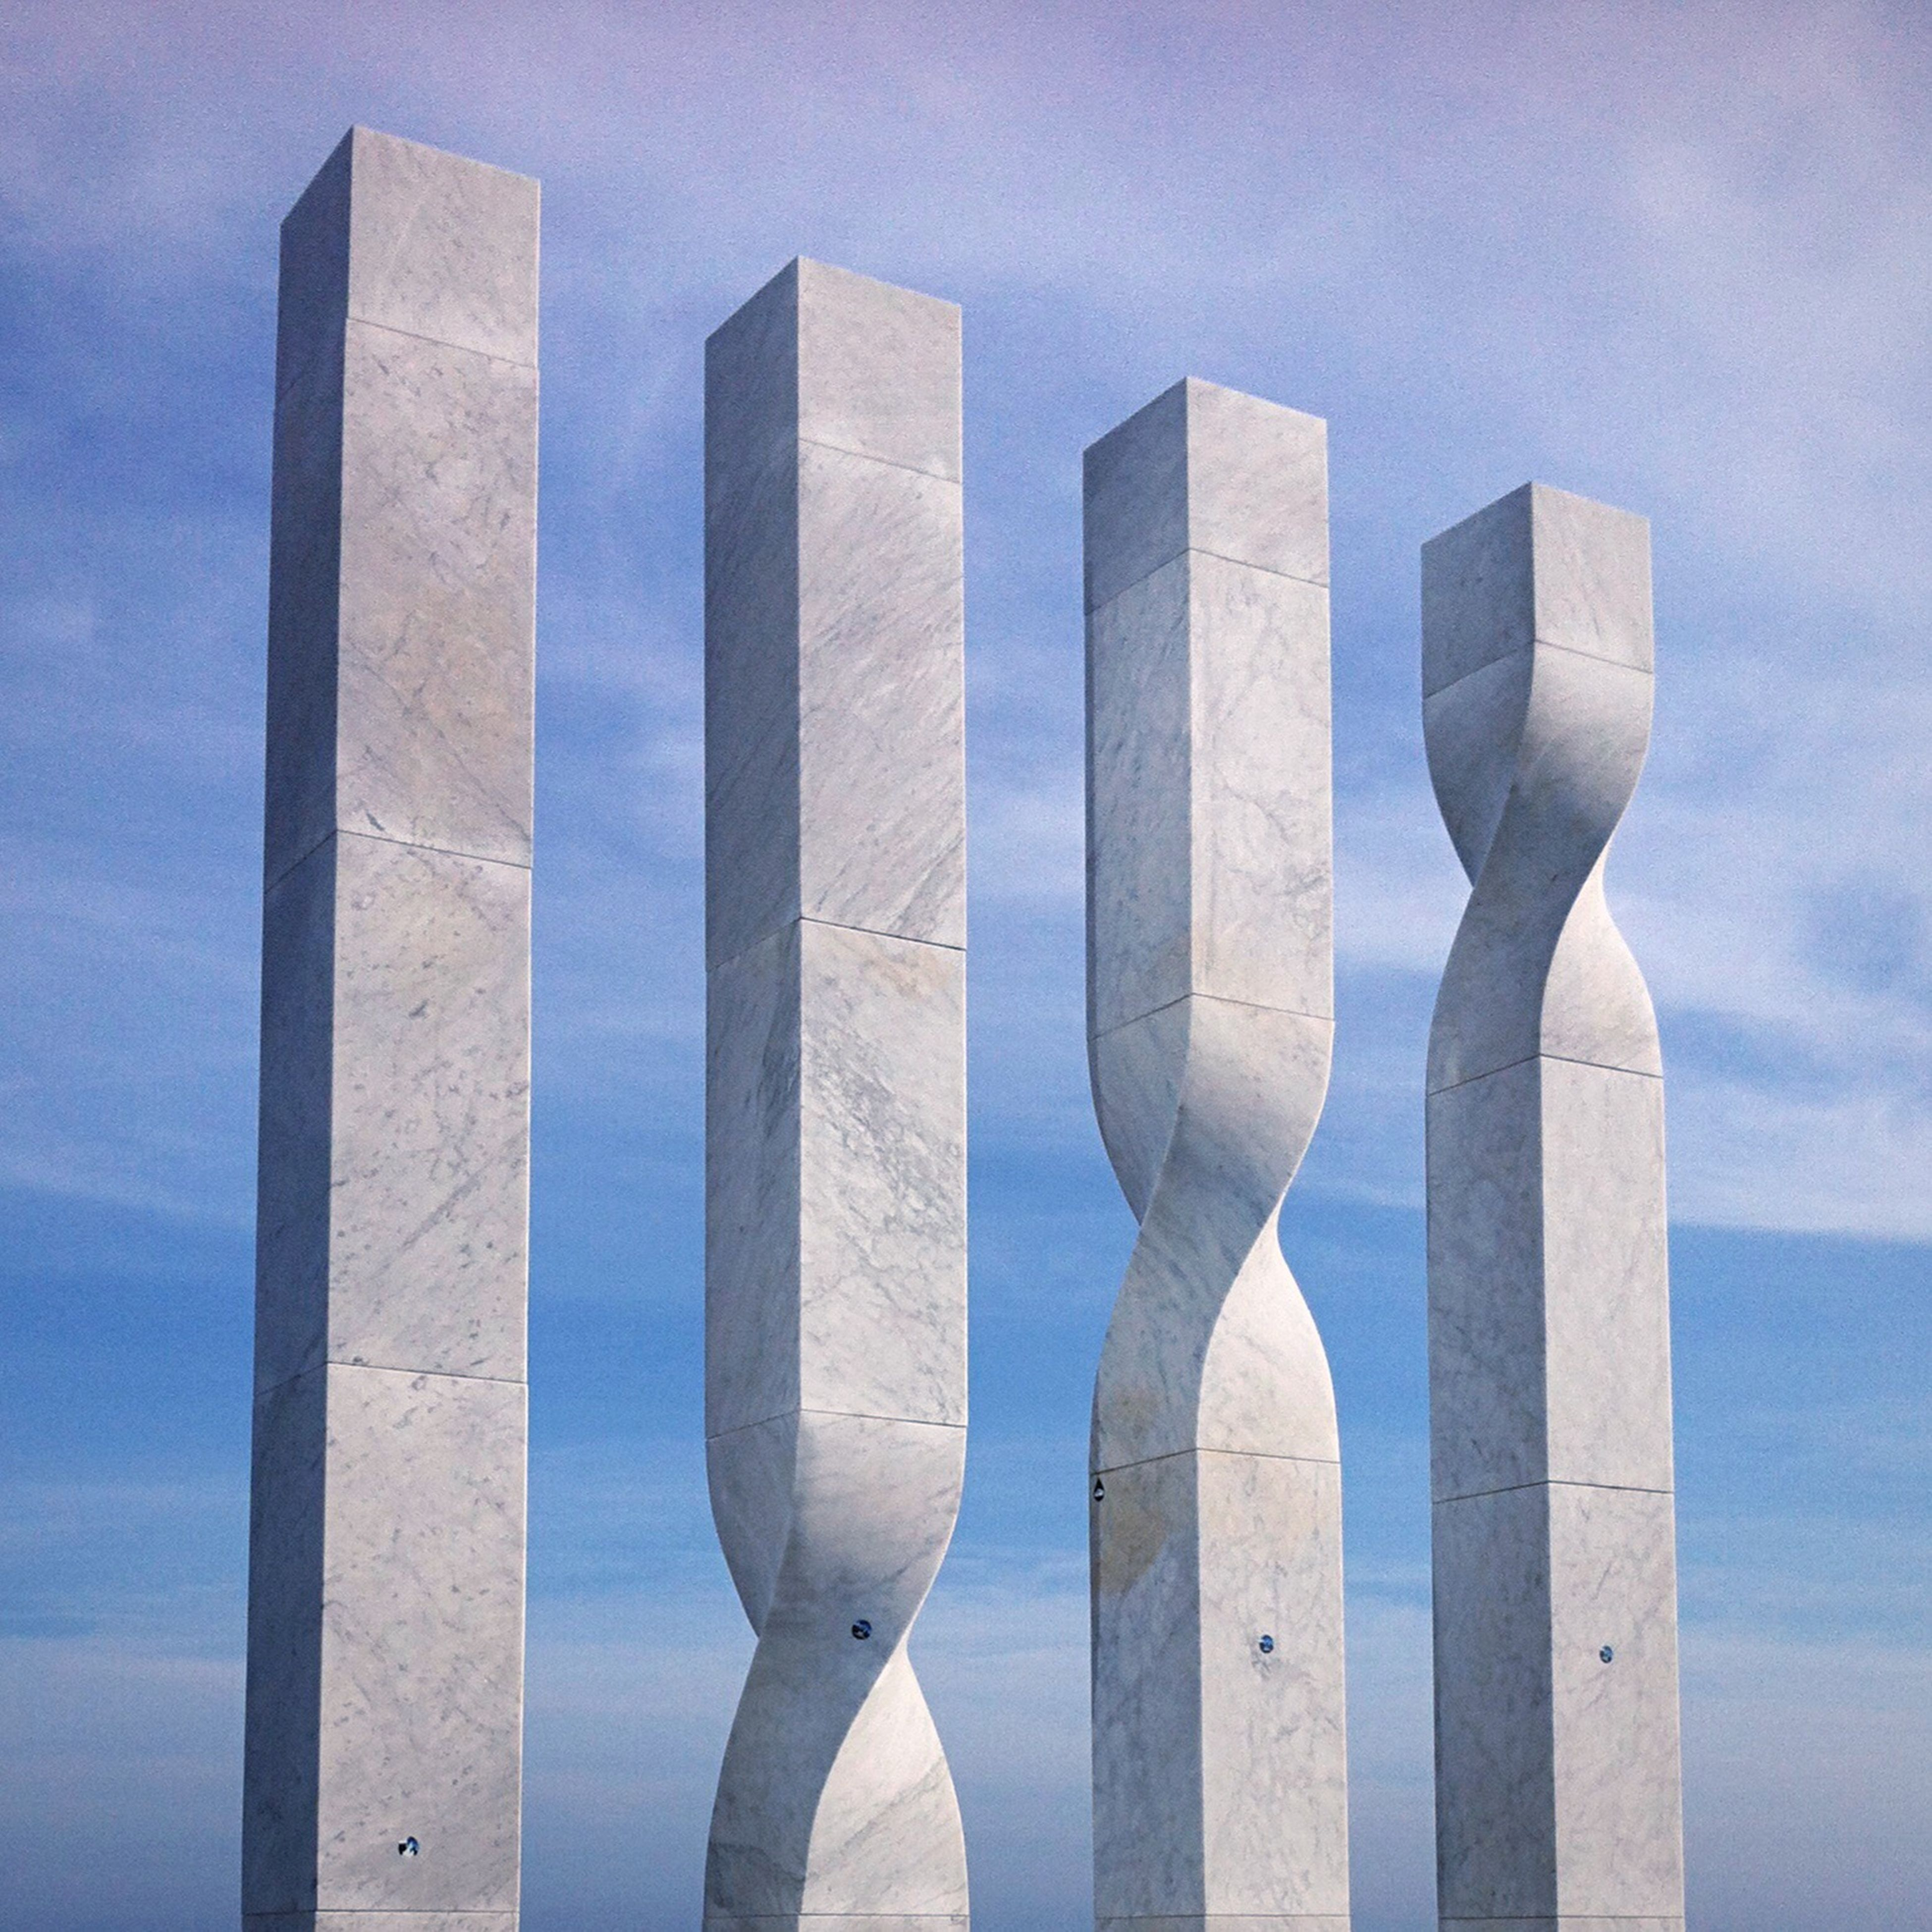 The Four Bars - Les Quatre Barres Sculpture by Ricardo Bofill a Marble representation of the Catalan flag (The Bars of Aragon) Beautiful Barcelona Barcelona, Spain Outdoors Sky Day Tourist Attraction  Daytime Modern Art Art Stone Sections Section Stack Stacked Geometric Shape Geometry Geometric Shapes Lines Lines, Shapes And Curves Break The Mold